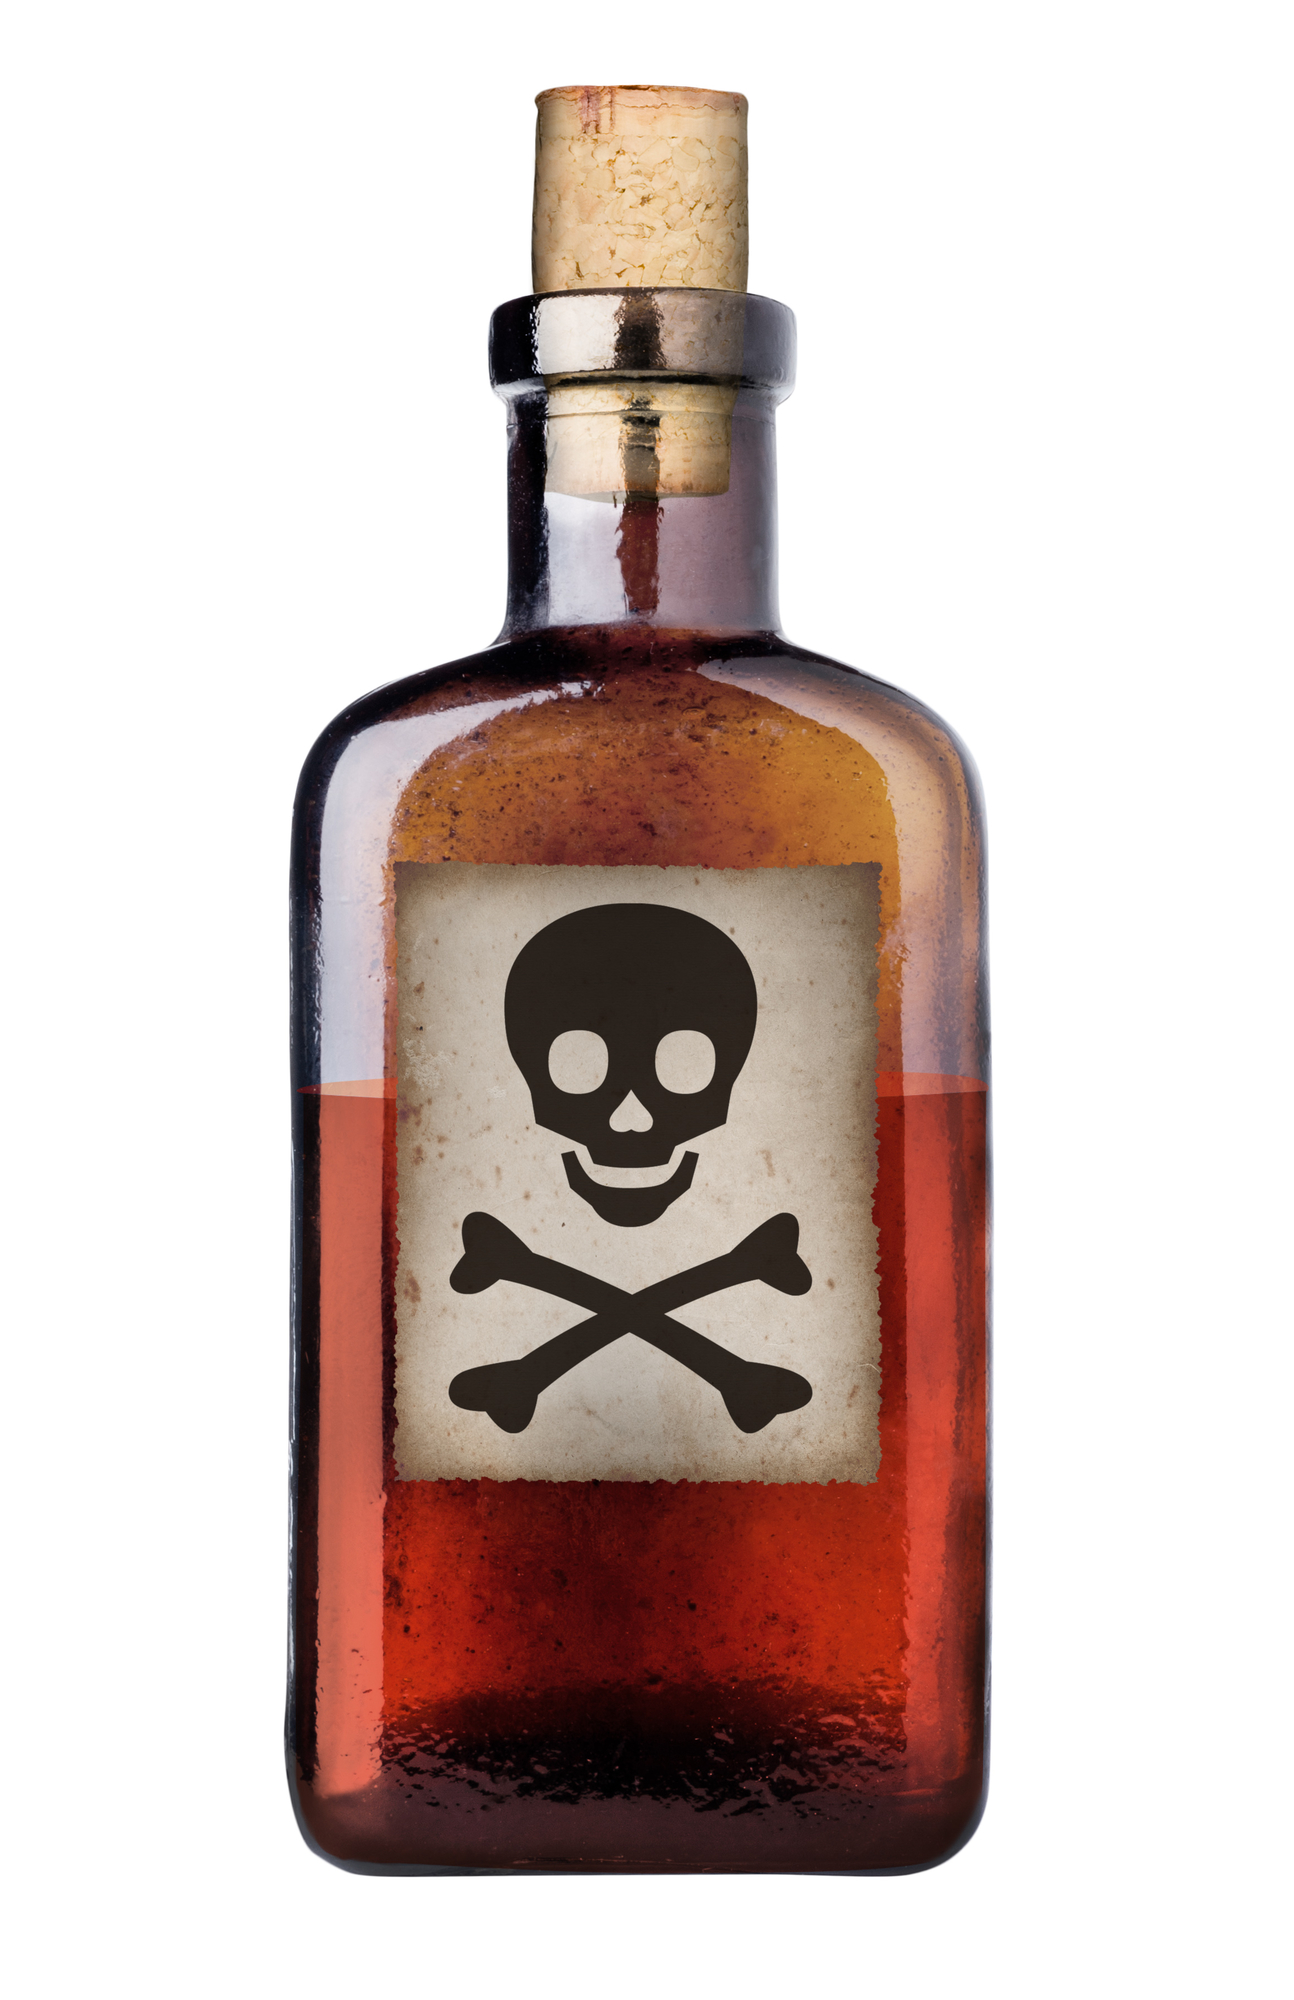 image of Poison bottle with skull and cross-bones warning sign in label.